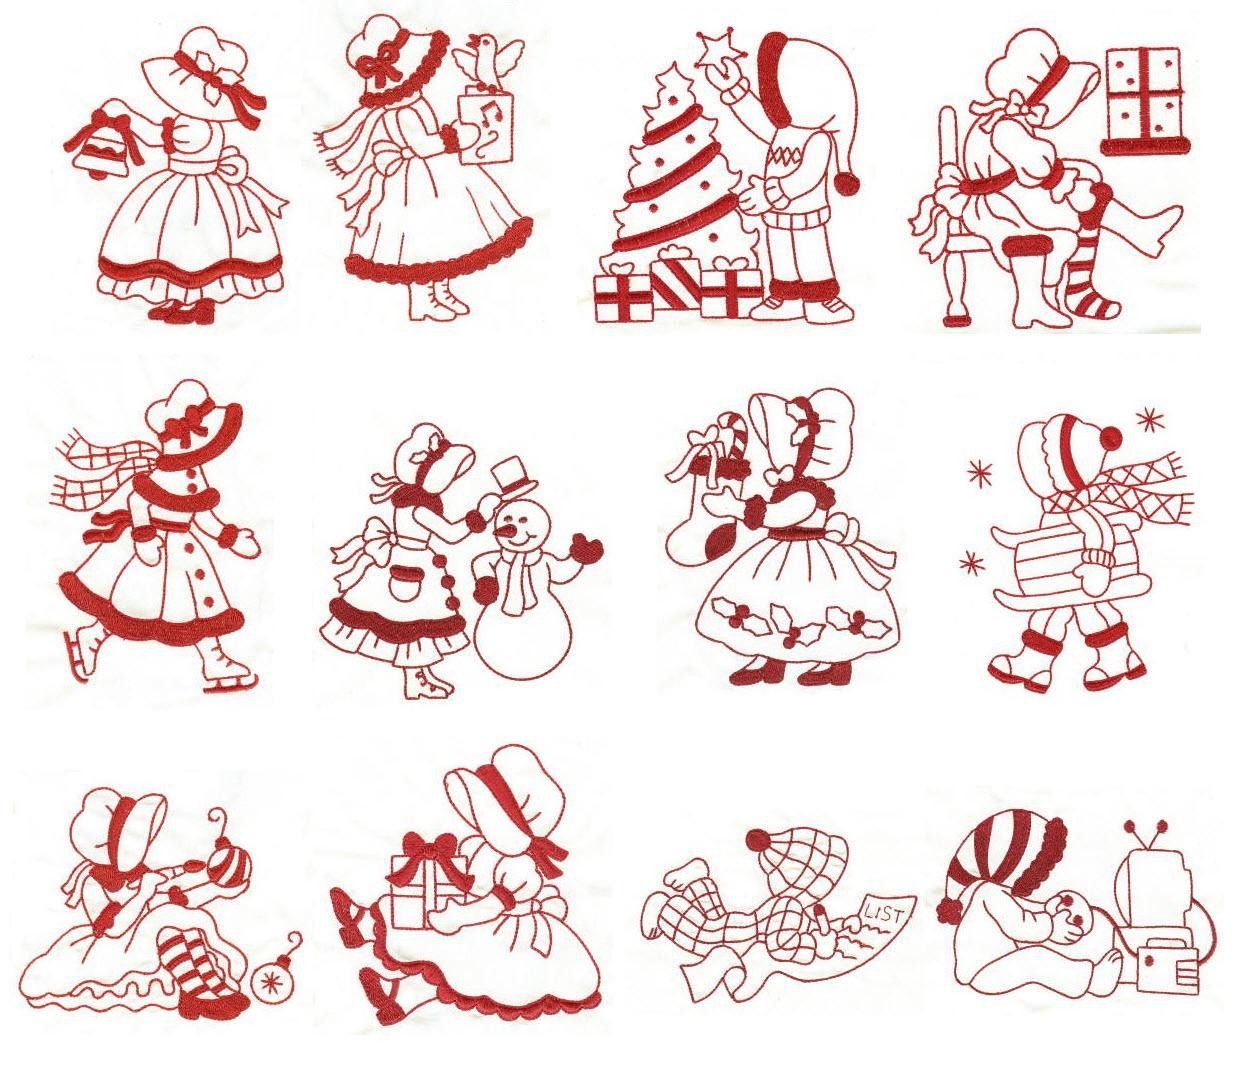 Sunbonnet Christmas Redwork Machine Embroidery Designs | Designs by ...